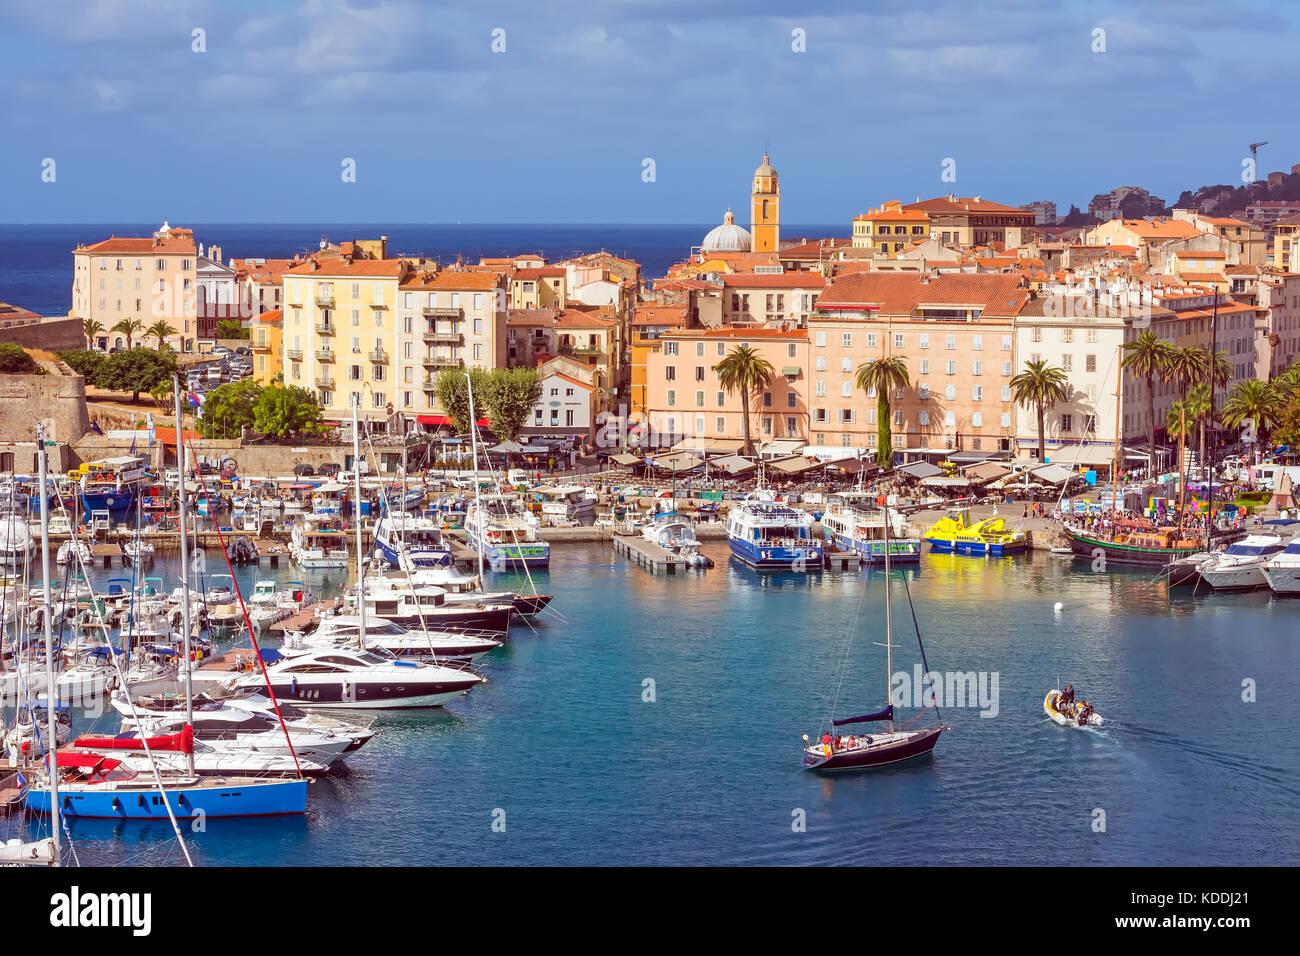 Above looking down on Ajaccio marina and the Old Town, Corsica, France. - Stock Image